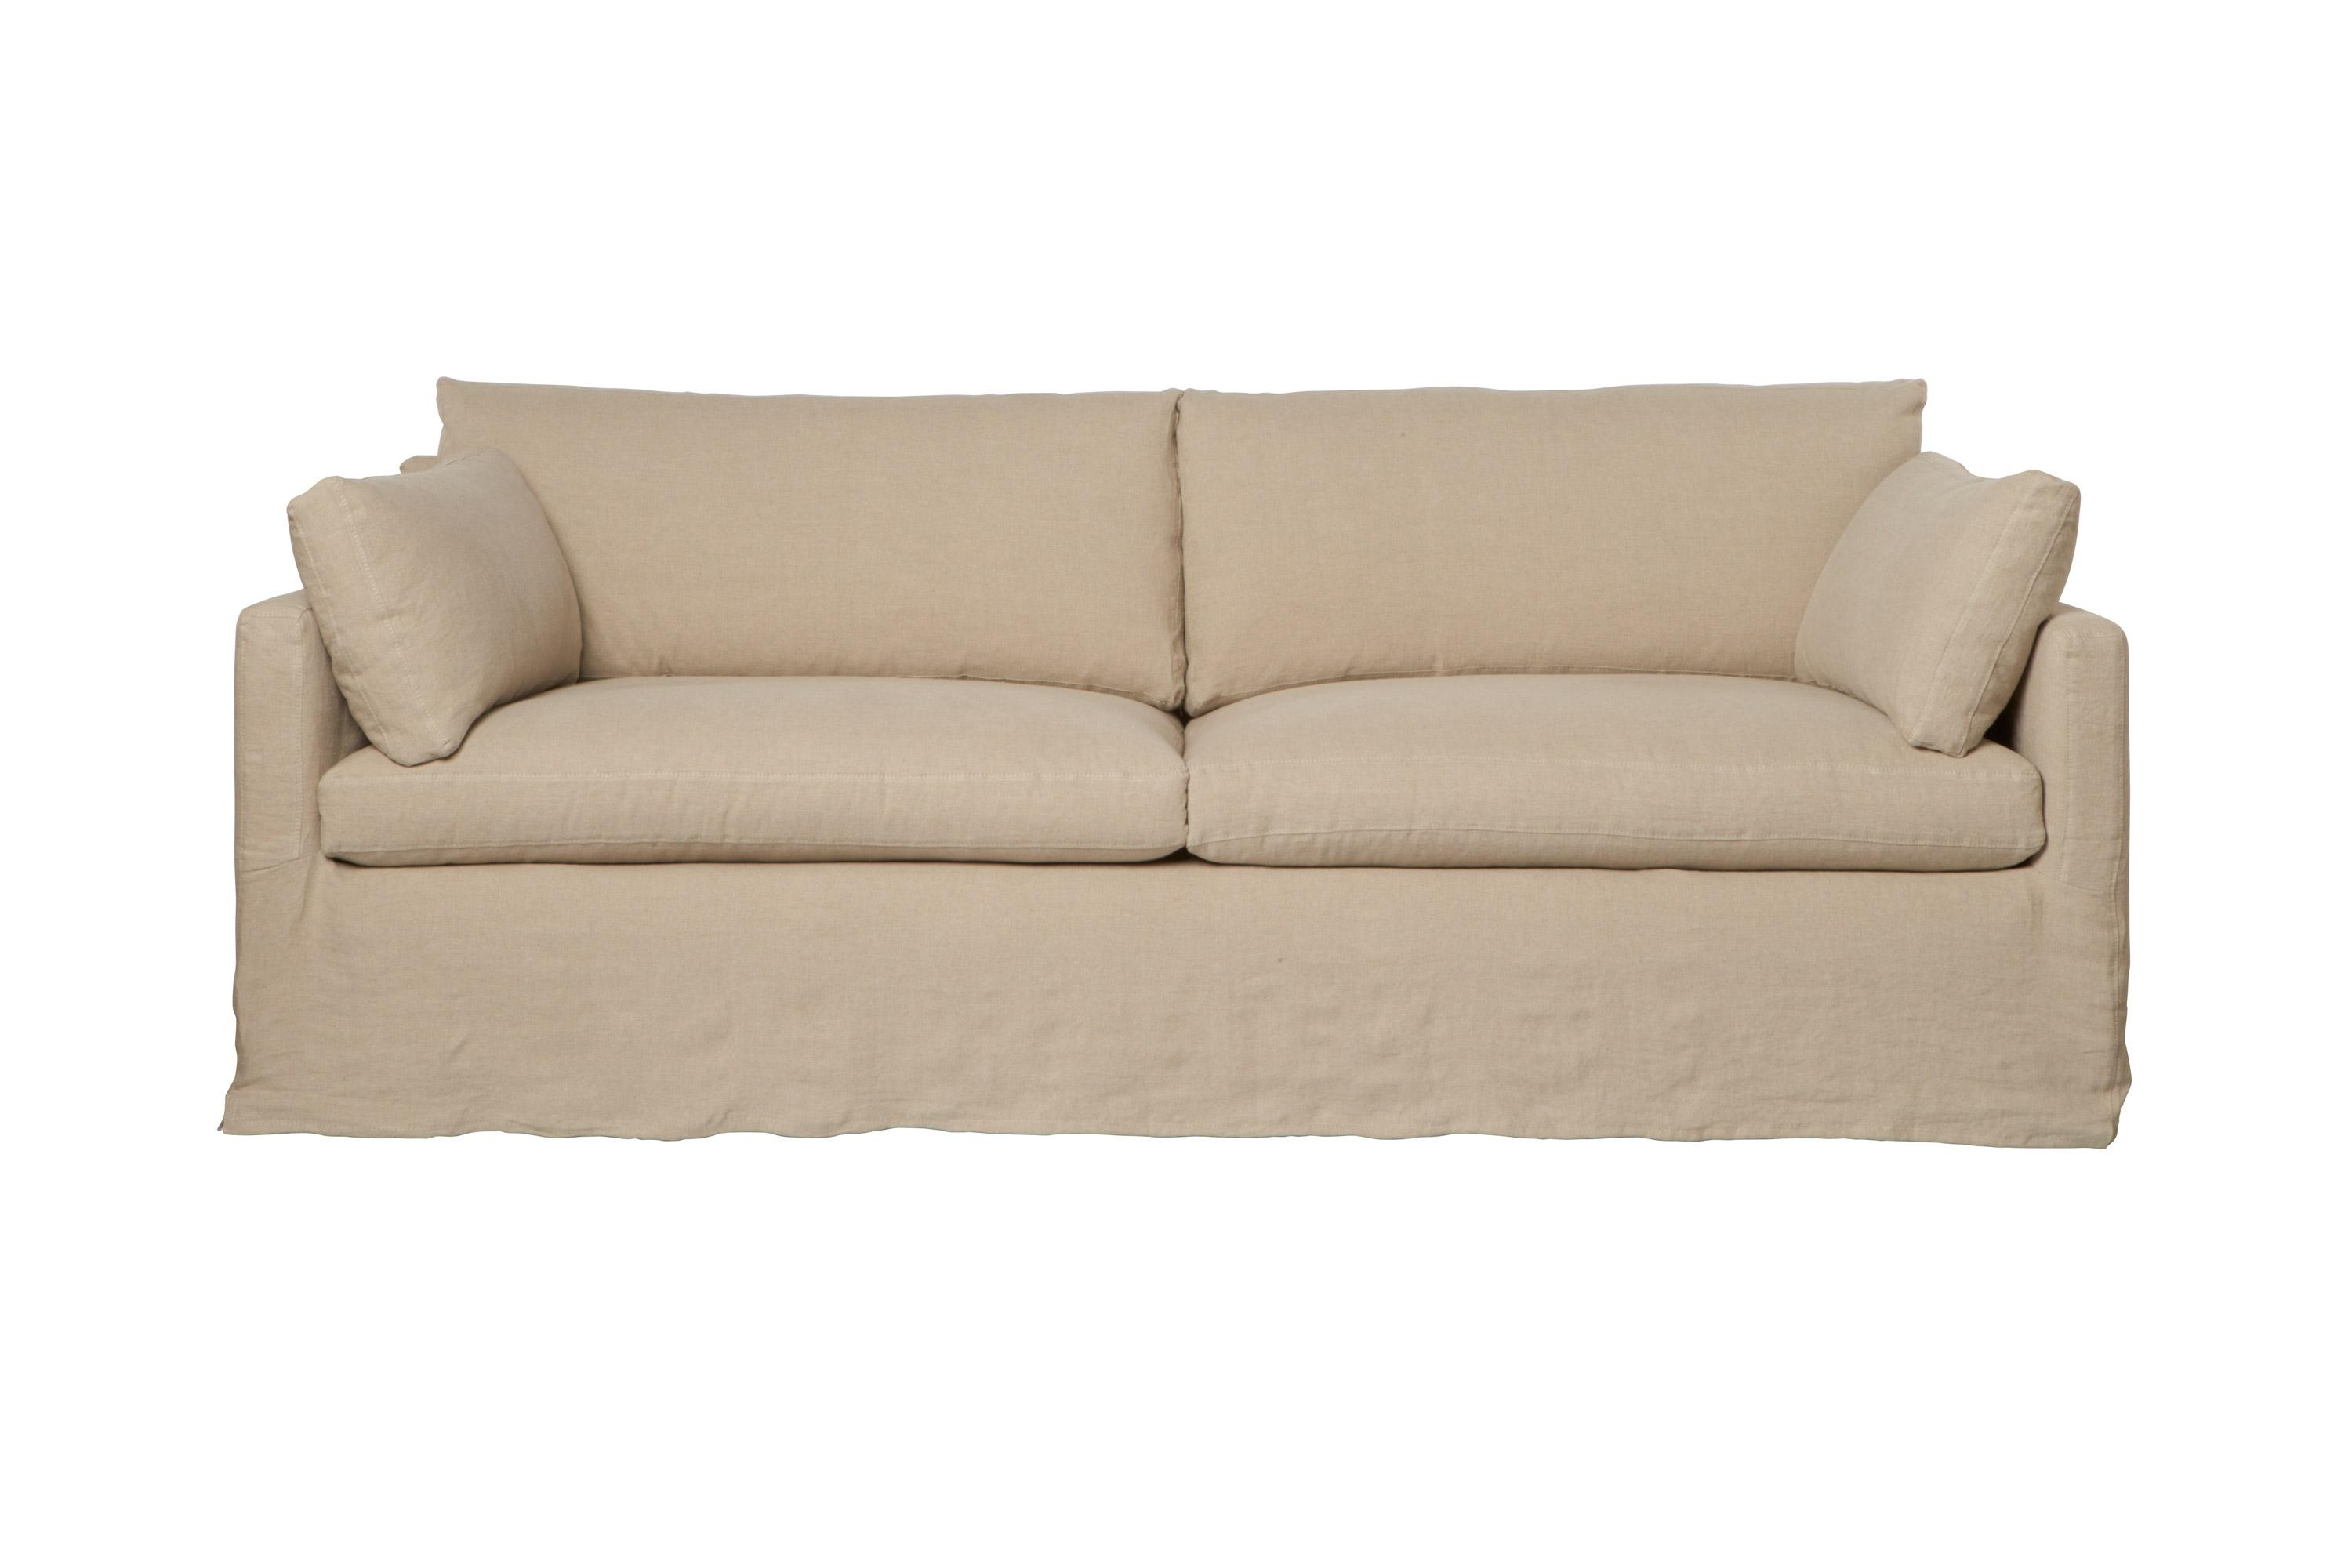 Armless Sofa Slipcover With Inspiration Picture 15747 | Kengire For Armless Sofa Slipcovers (Image 5 of 20)